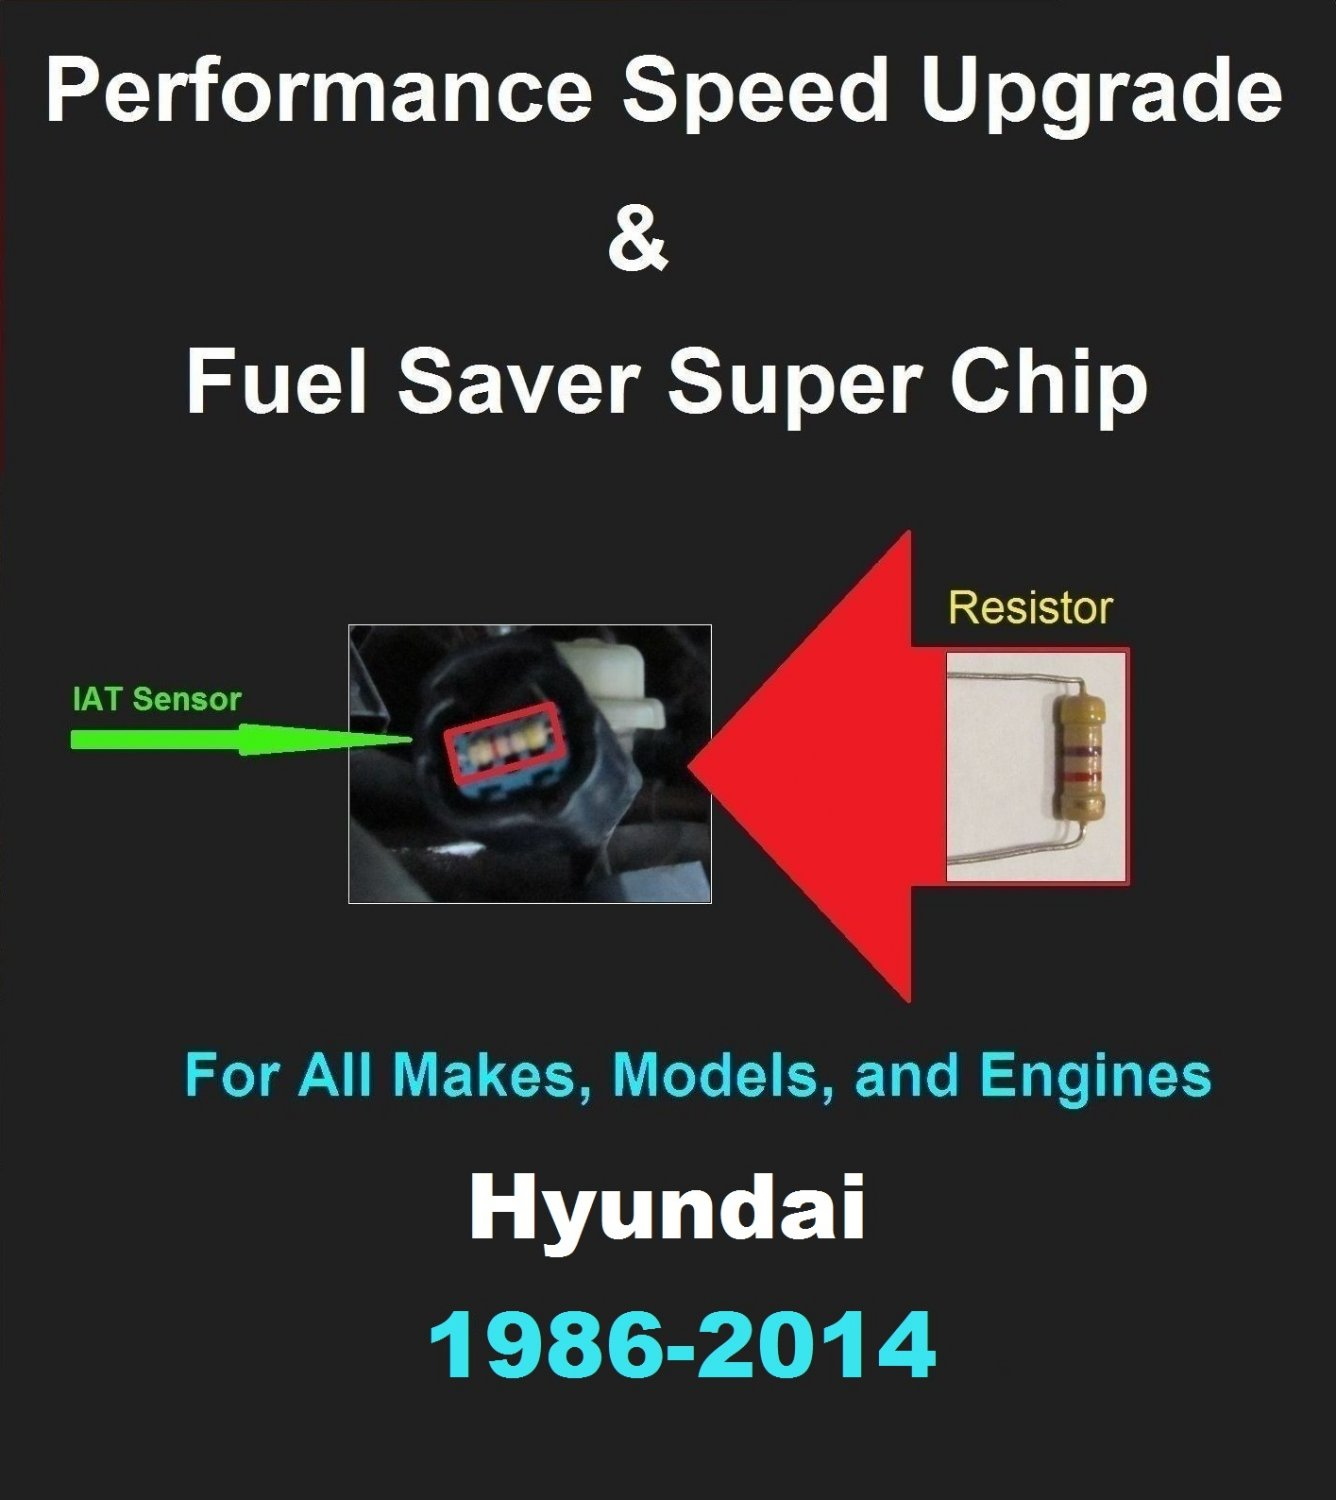 Hyundai Performance IAT Sensor Resistor Chip Mod Increase MPG HP Speed Power Super Fuel Gas Saver